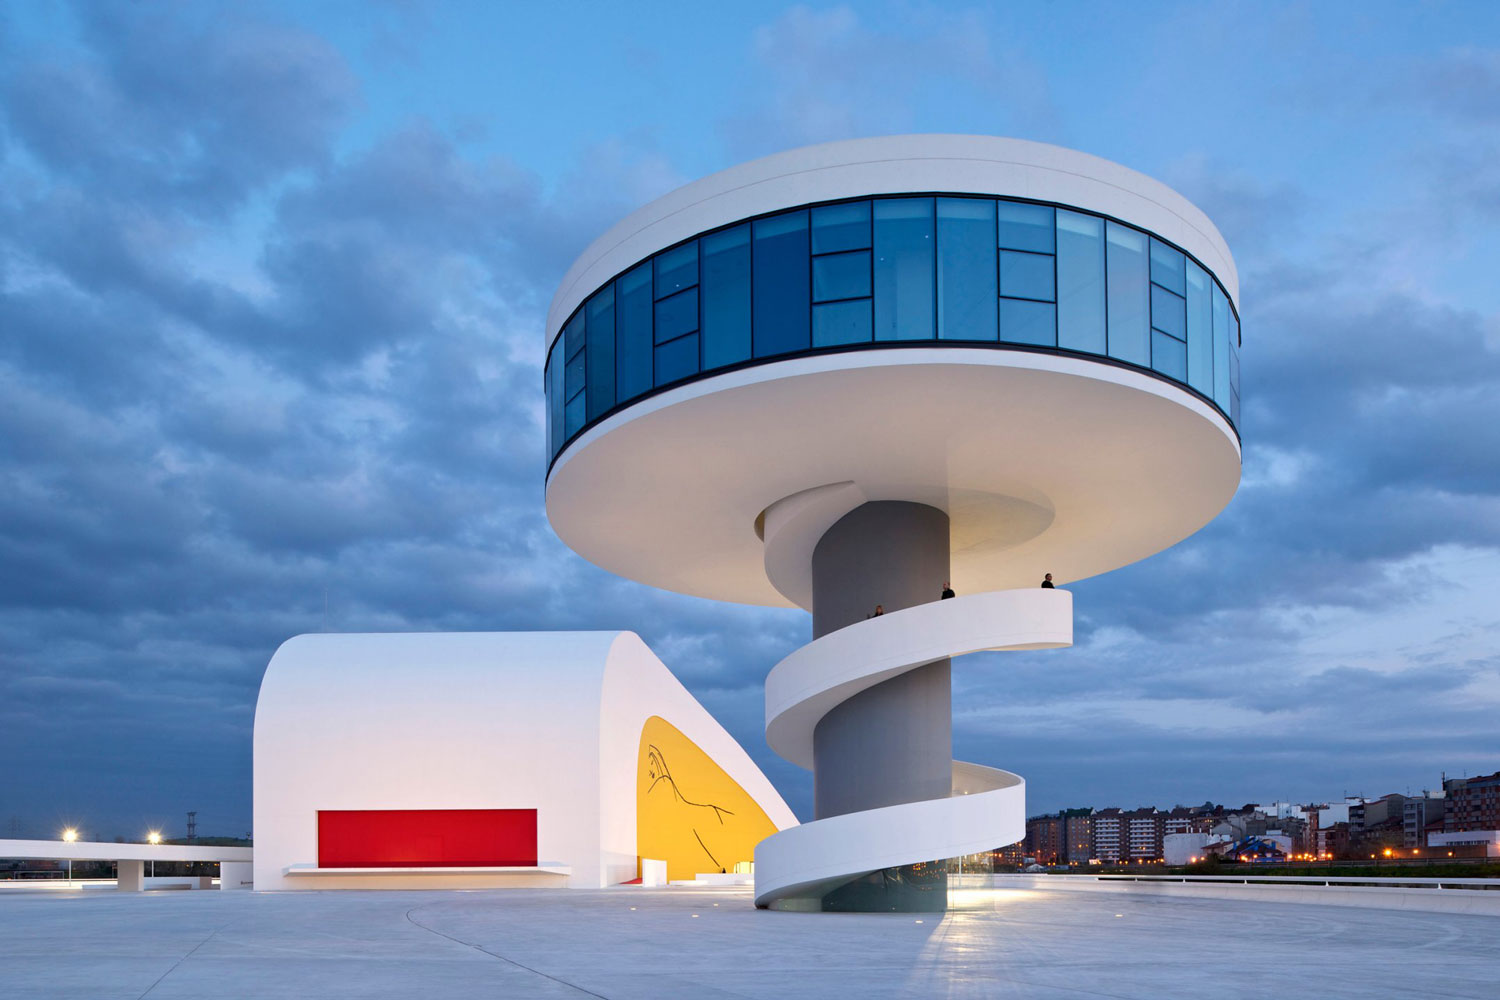 amazing buildings designed by oscar niemeyer yellowtrace